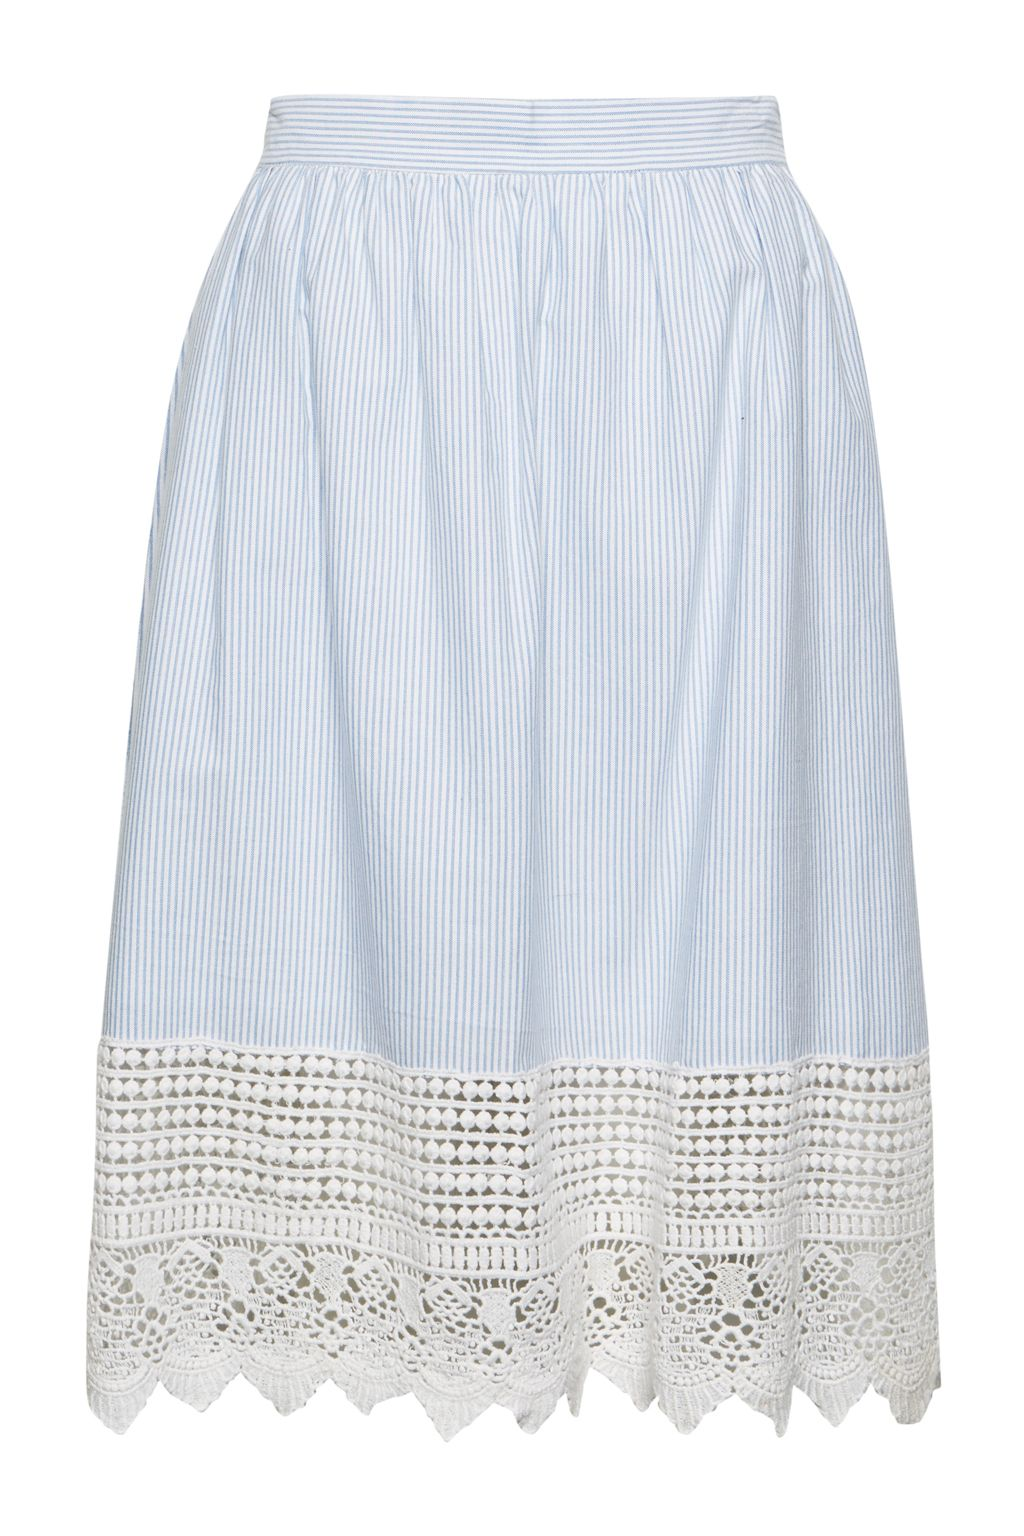 French Connection Nuru Schiffley High Waisted Lace Skirt, Blue